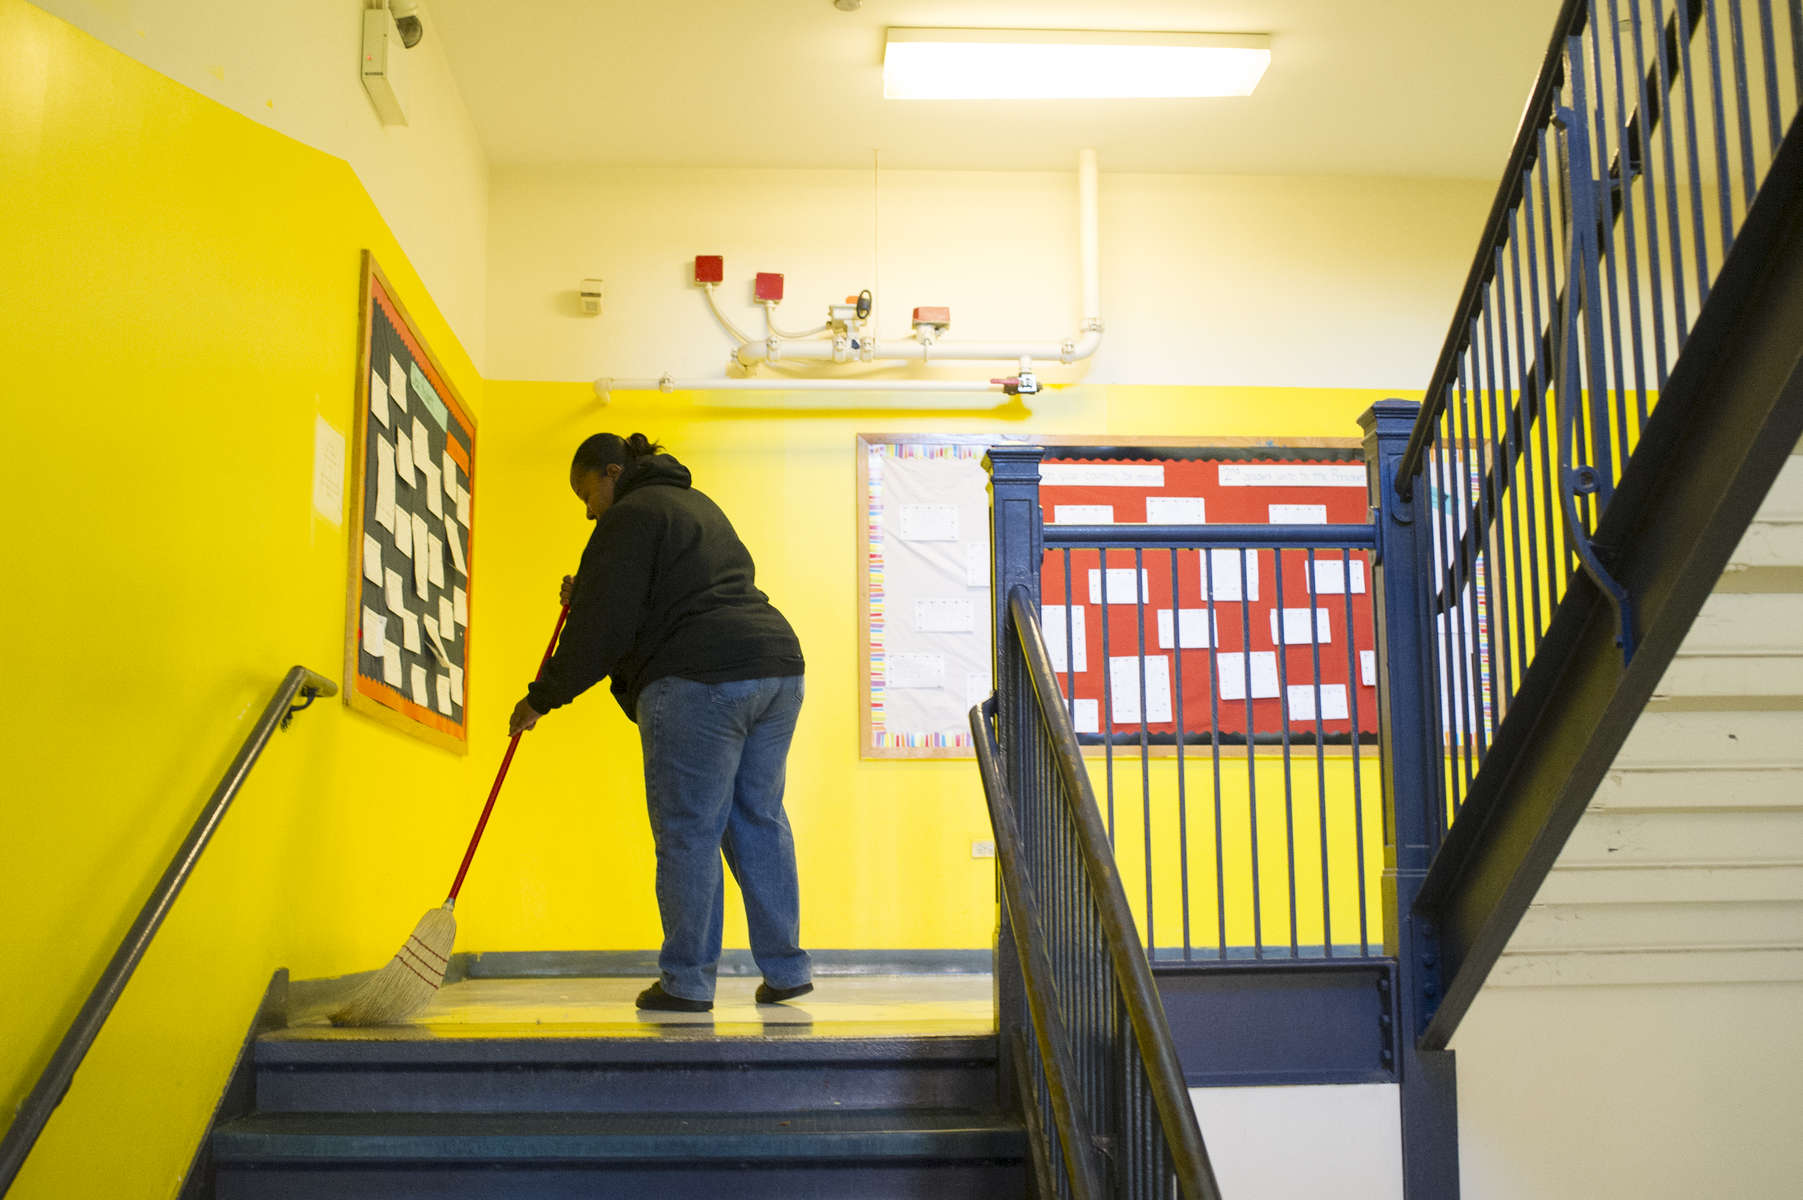 uchicago charter schools north kenwood oakland nko campus custodian sirena buchanan sweeps a landing on a staircase of the university of chicago charter schools